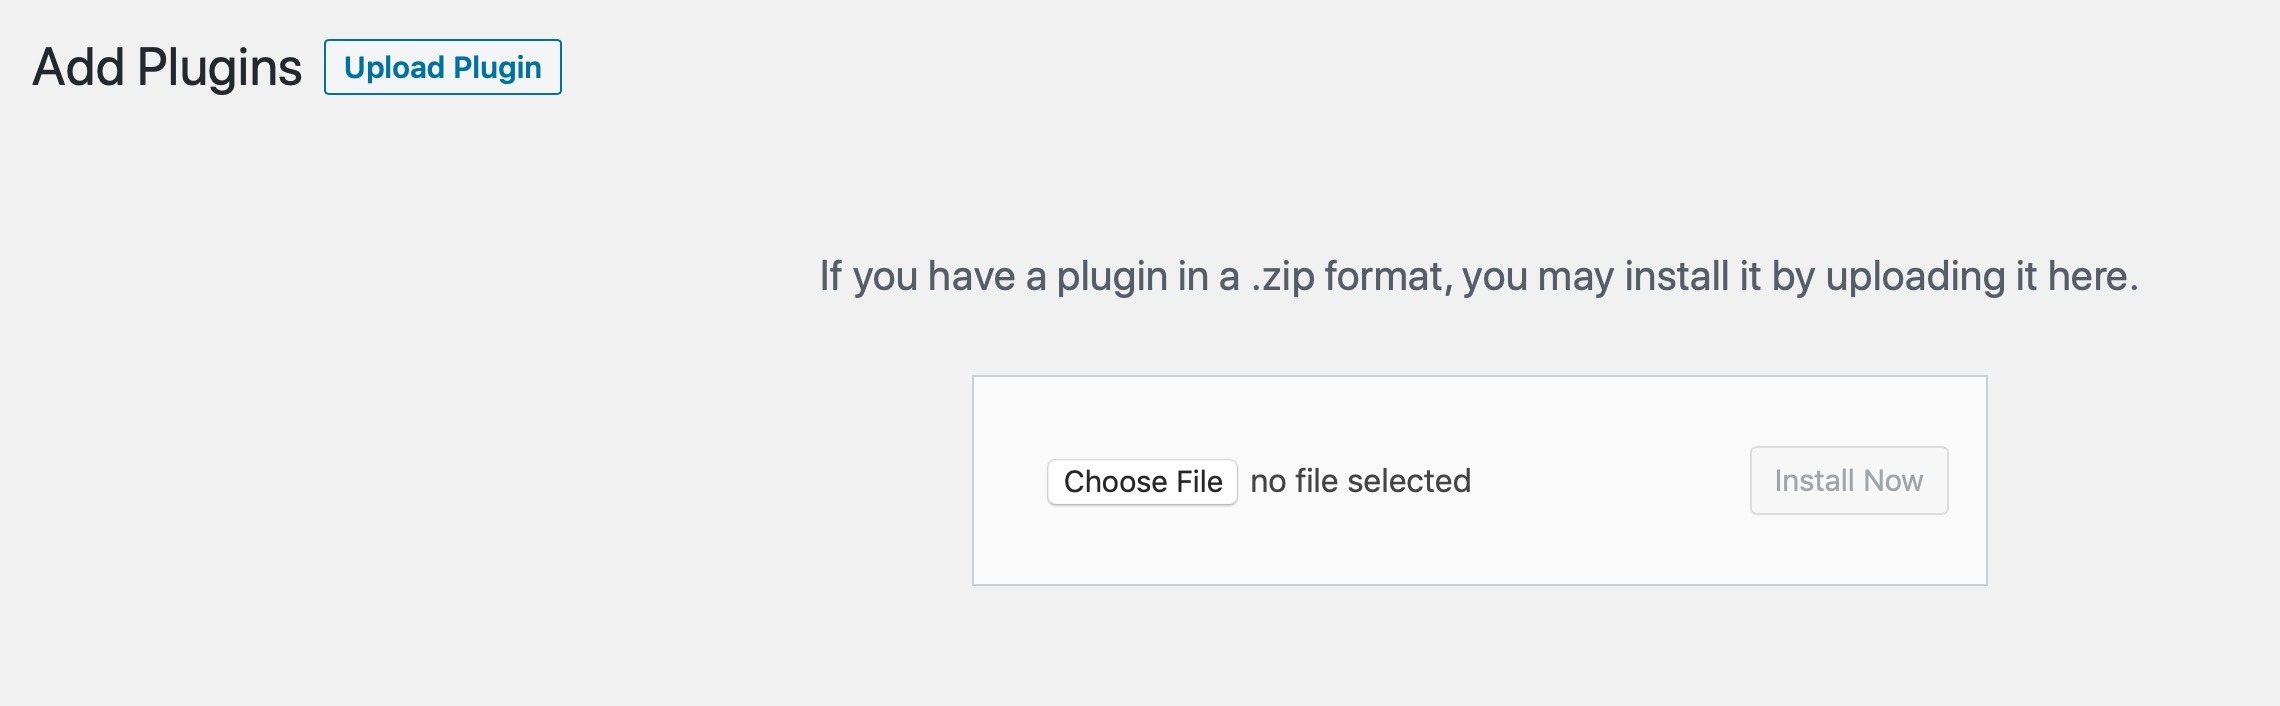 upload plugin screen